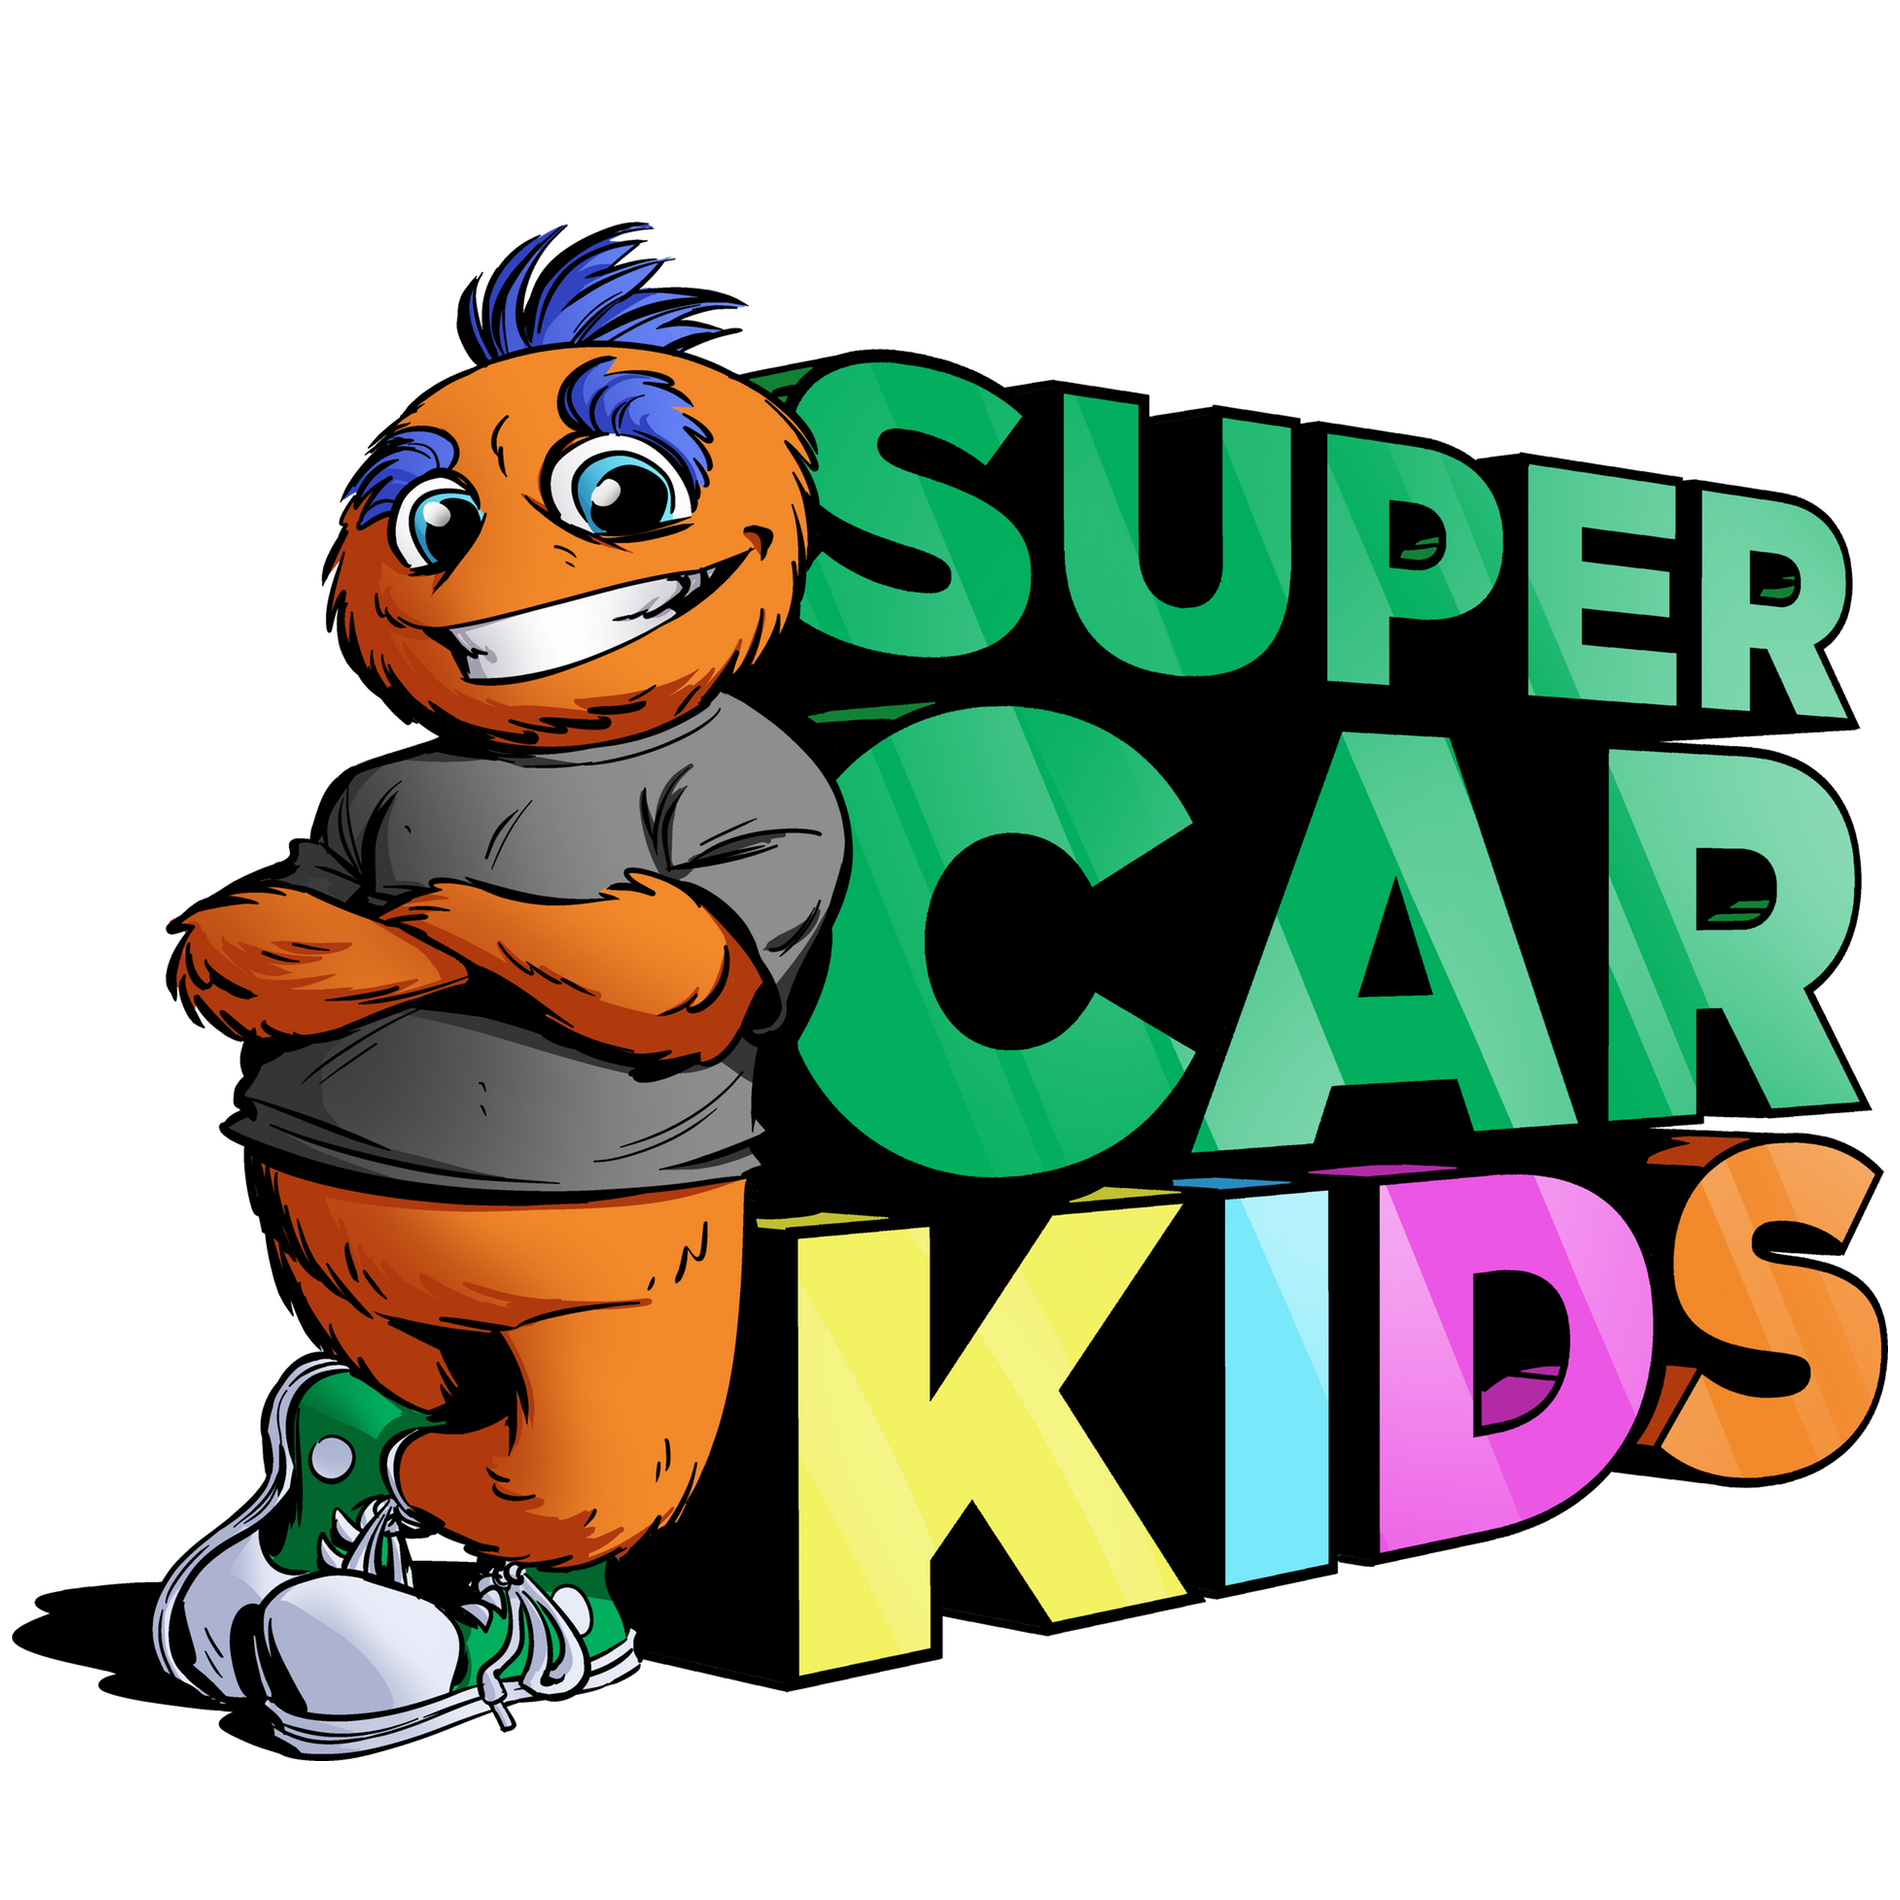 Super Car Kid Logo